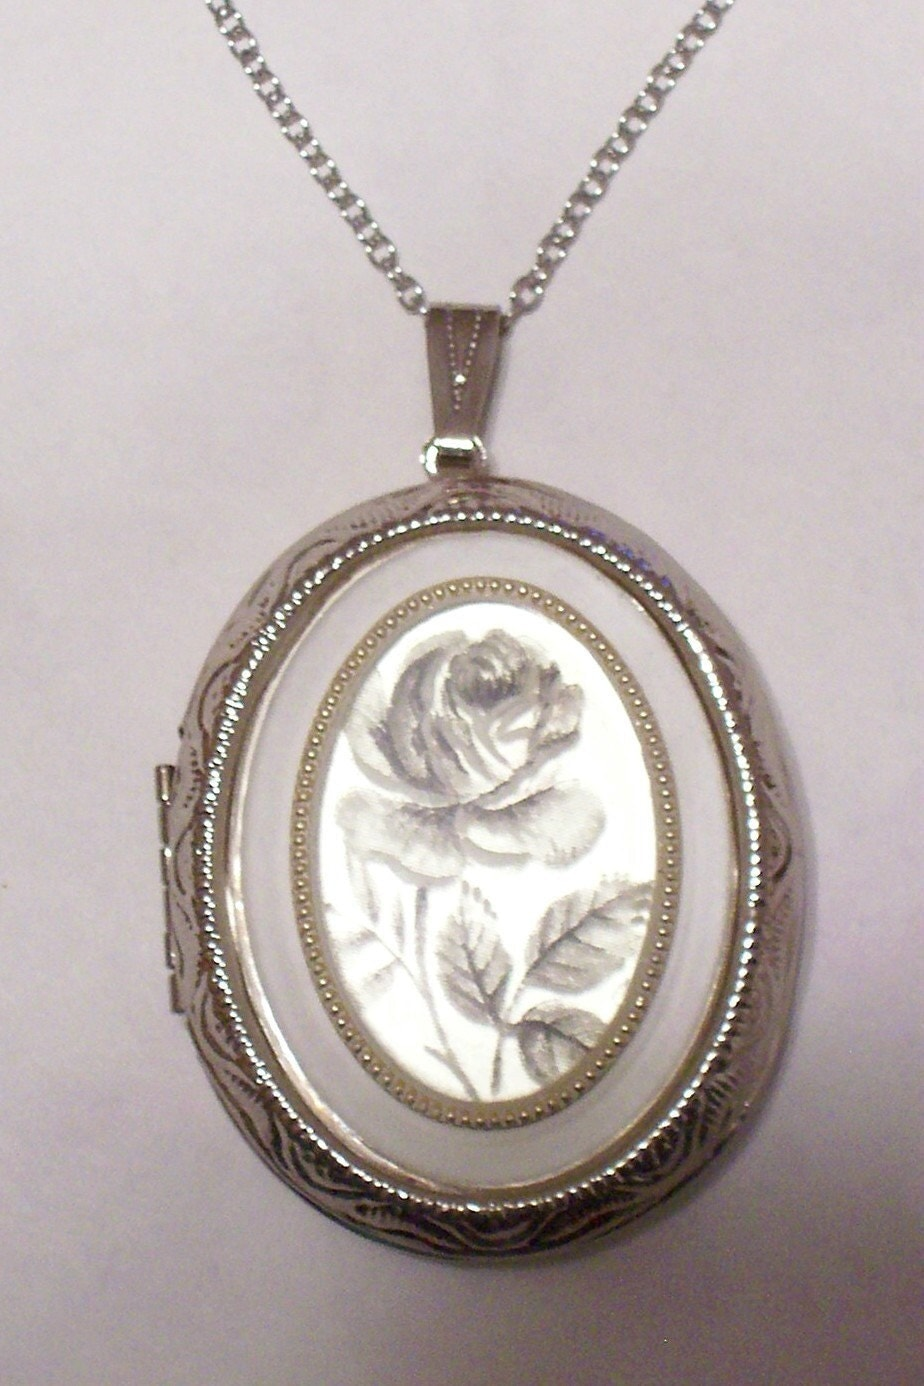 Unusual Frosted Silver Gray Rose Cameo Locket Necklace - Now in Bright Polished Silver